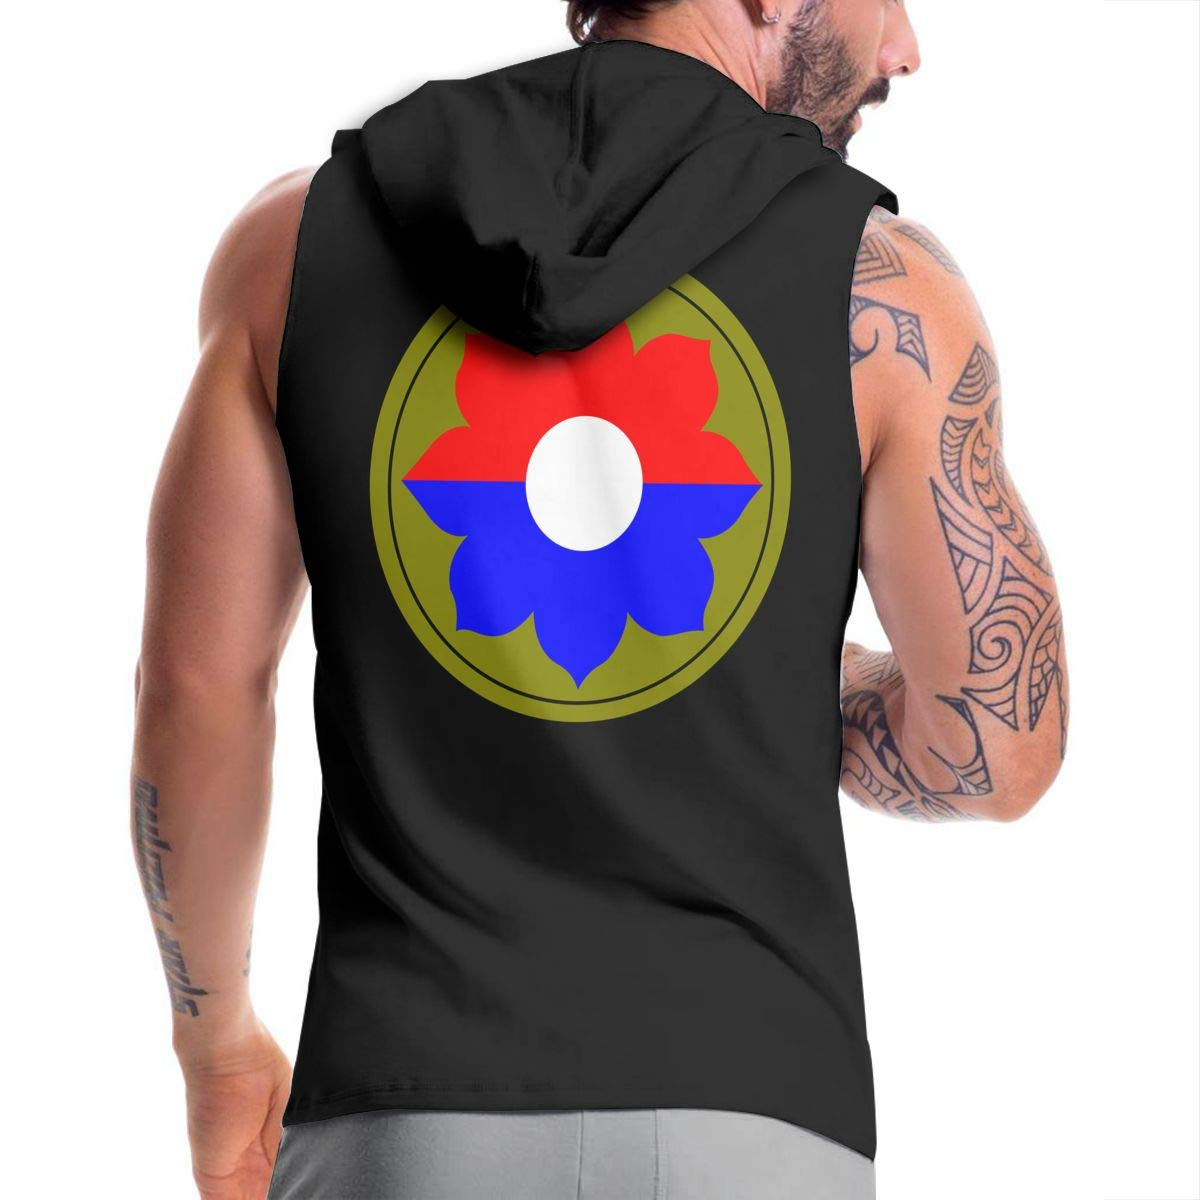 9th Infantry Division Mens Hipster Hip Hop Hoodies Shirts